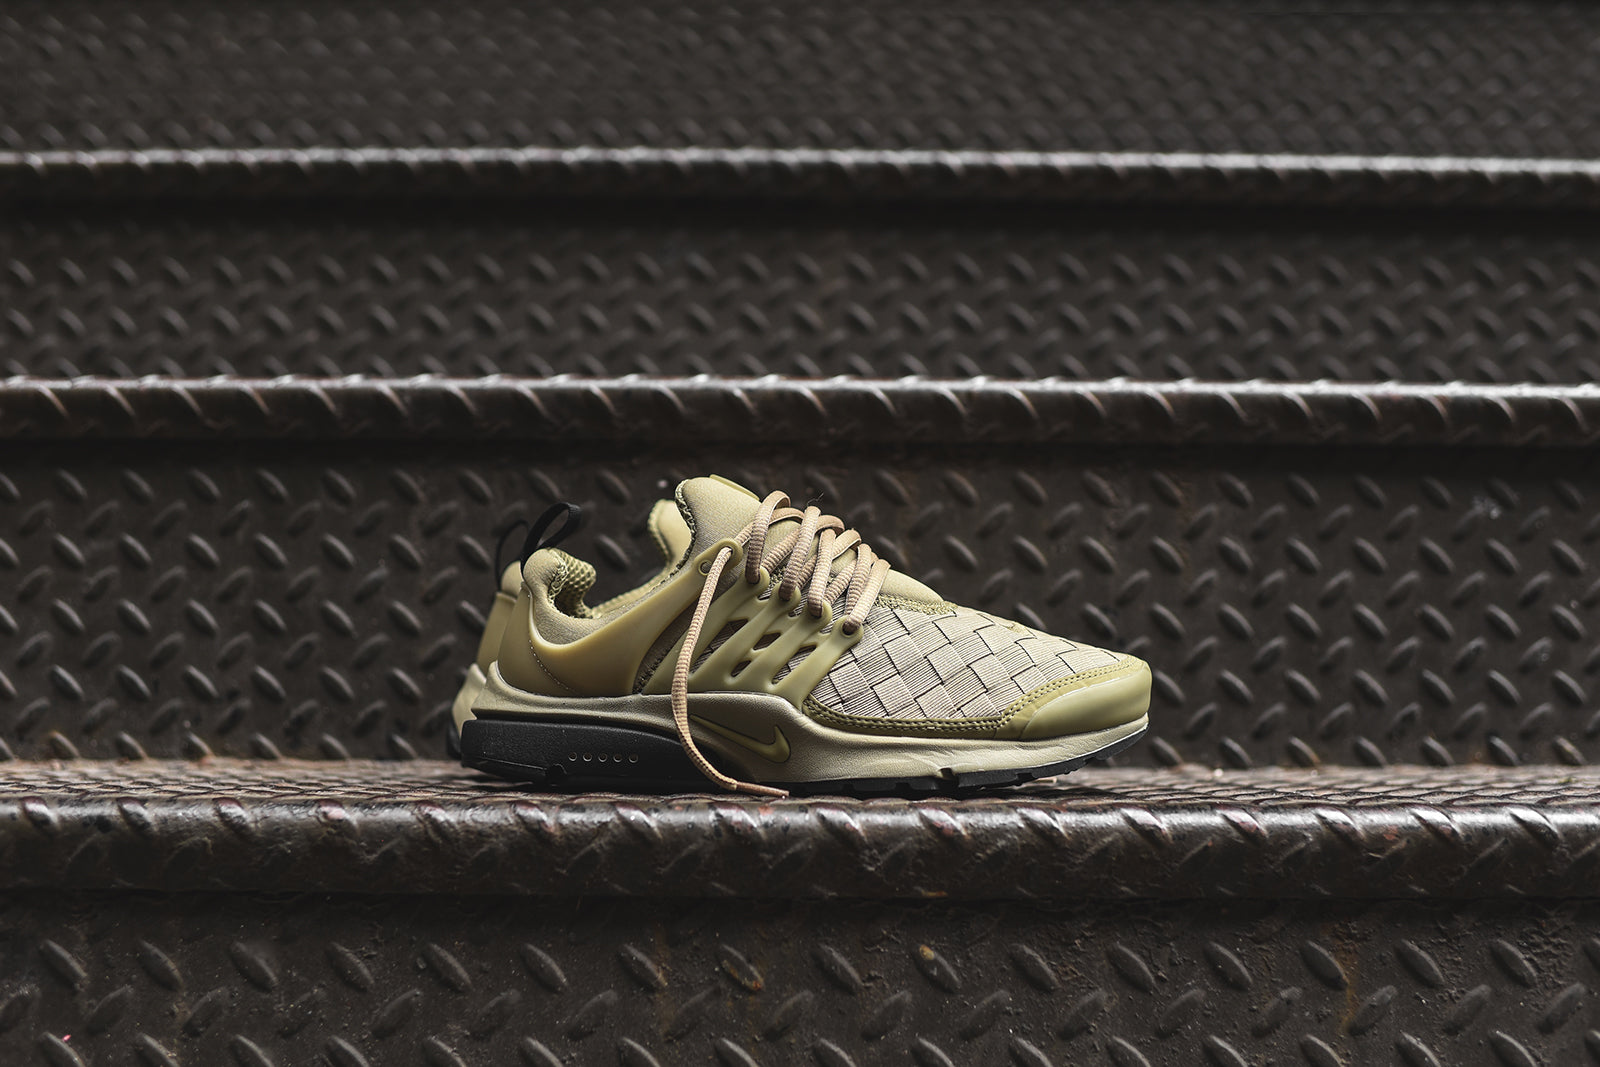 sports shoes 5a8a7 dfac0 ... Nike Air Presto SE Woven Pack. Blog Post September 07, 2016.